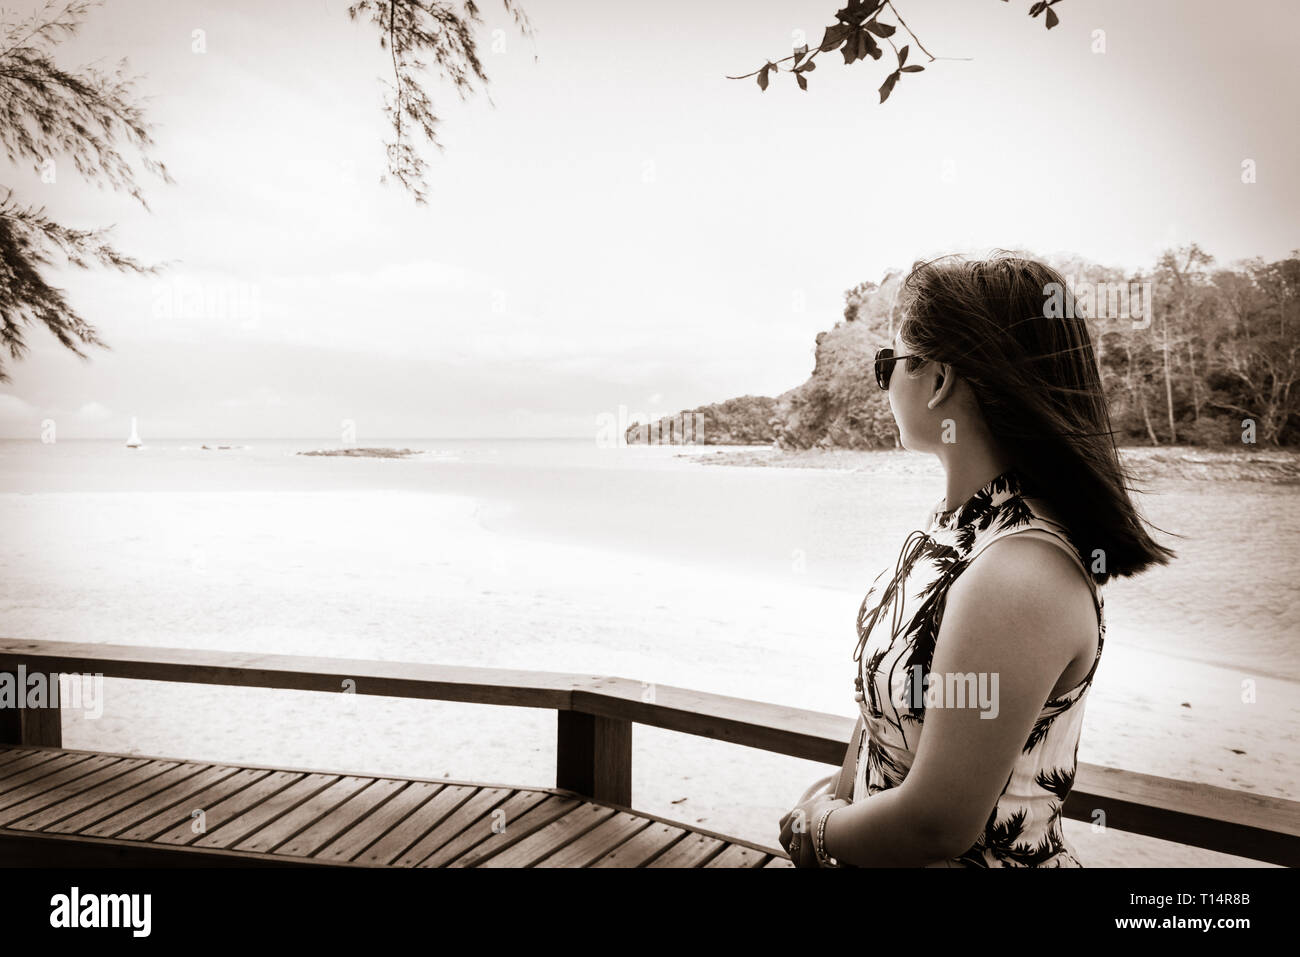 Woman tourist wearing sunglasse looking at the beach and sea in summer on Tarutao island National Park, Satun, Thailand, in two tone black and white c - Stock Image